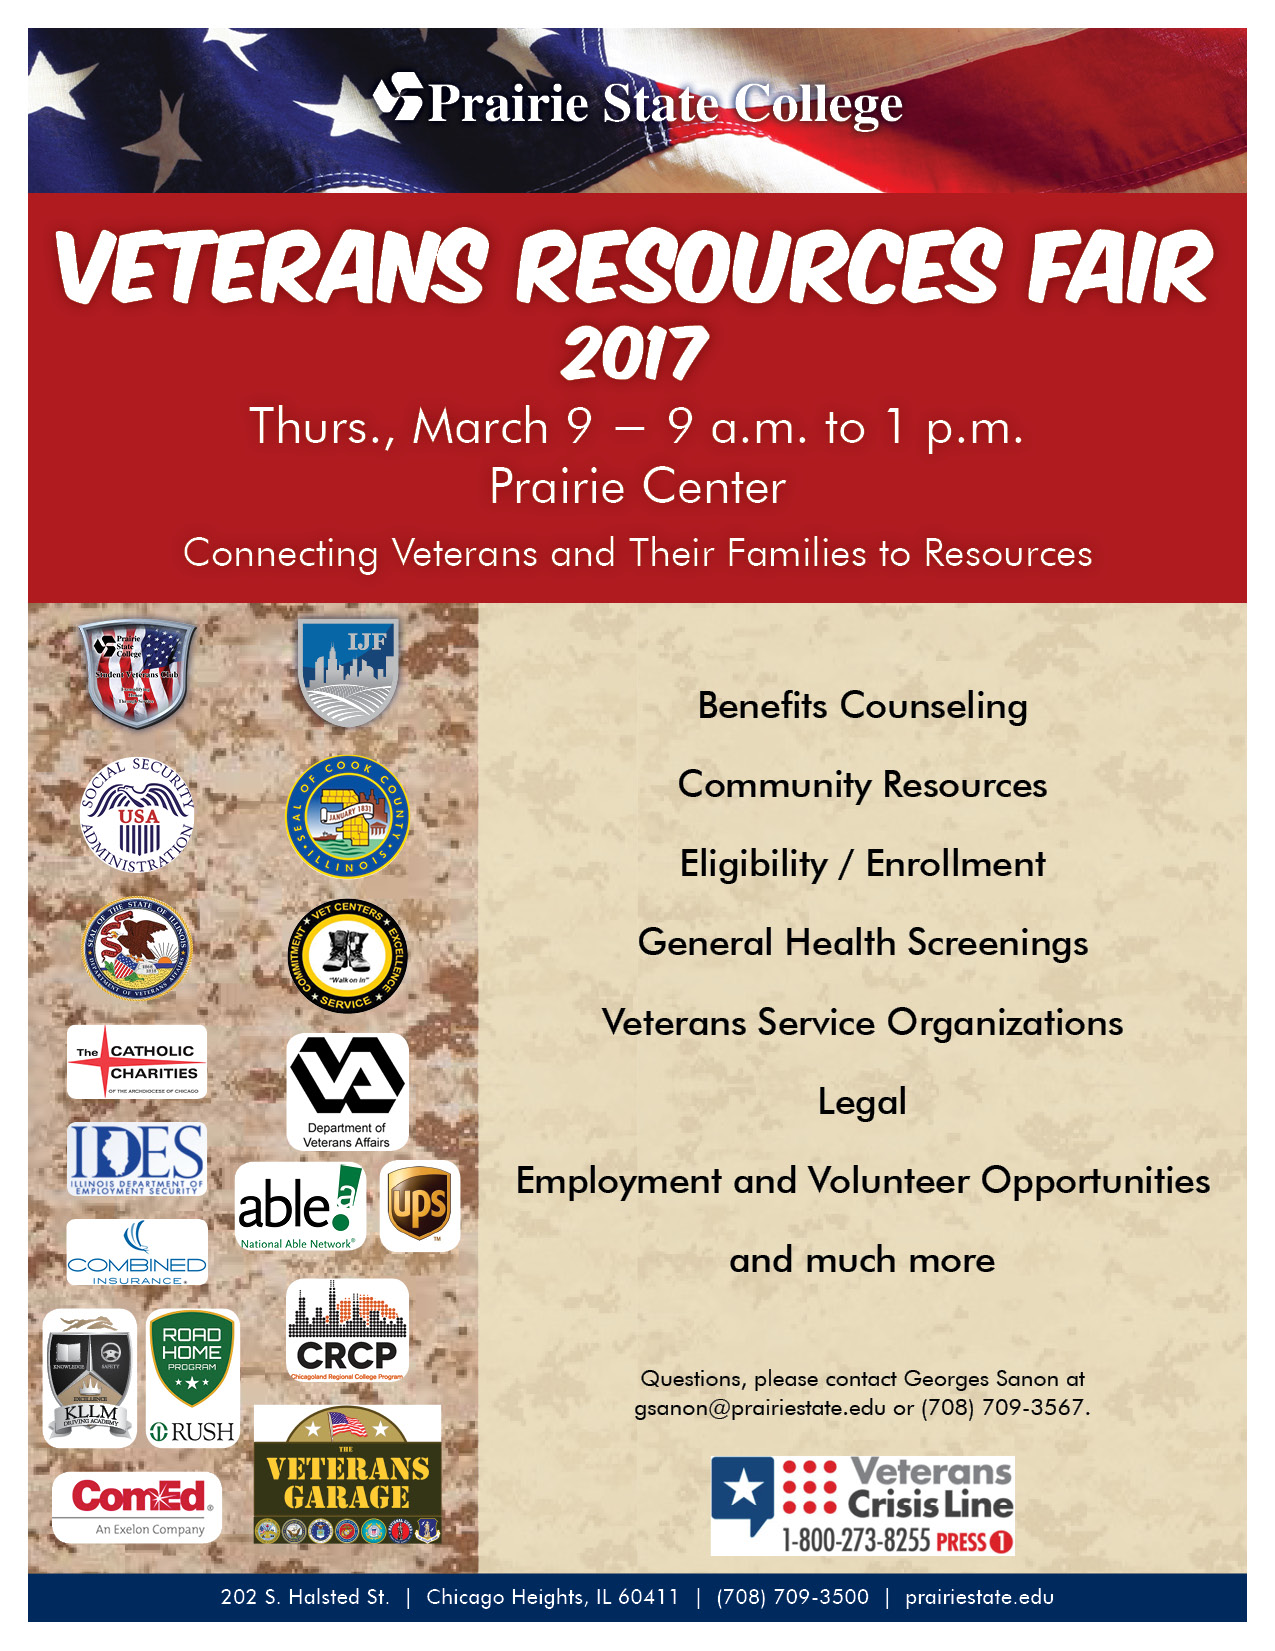 Veterans Resources Fair Scheduled on PSC Campus March 9